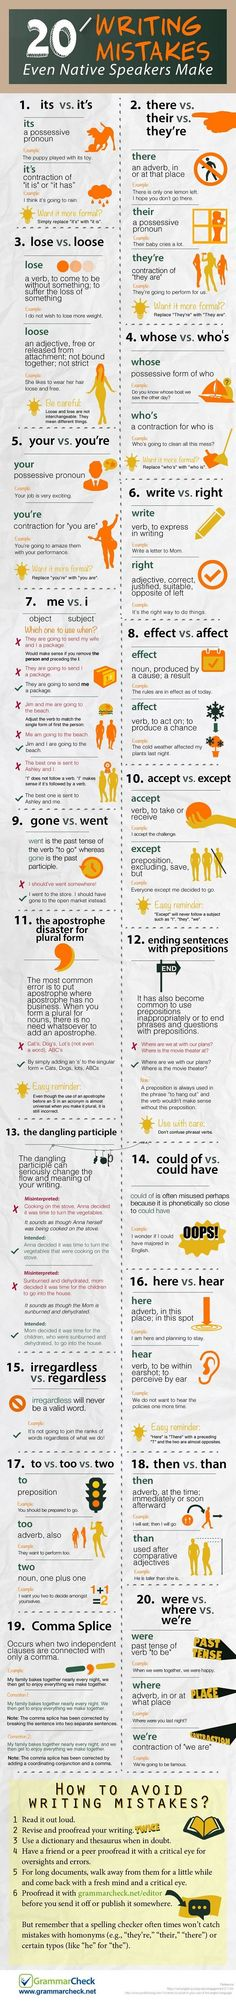 Infographic: 20 Common Writing Mistakes That Most People Make - http://DesignTAXI.com